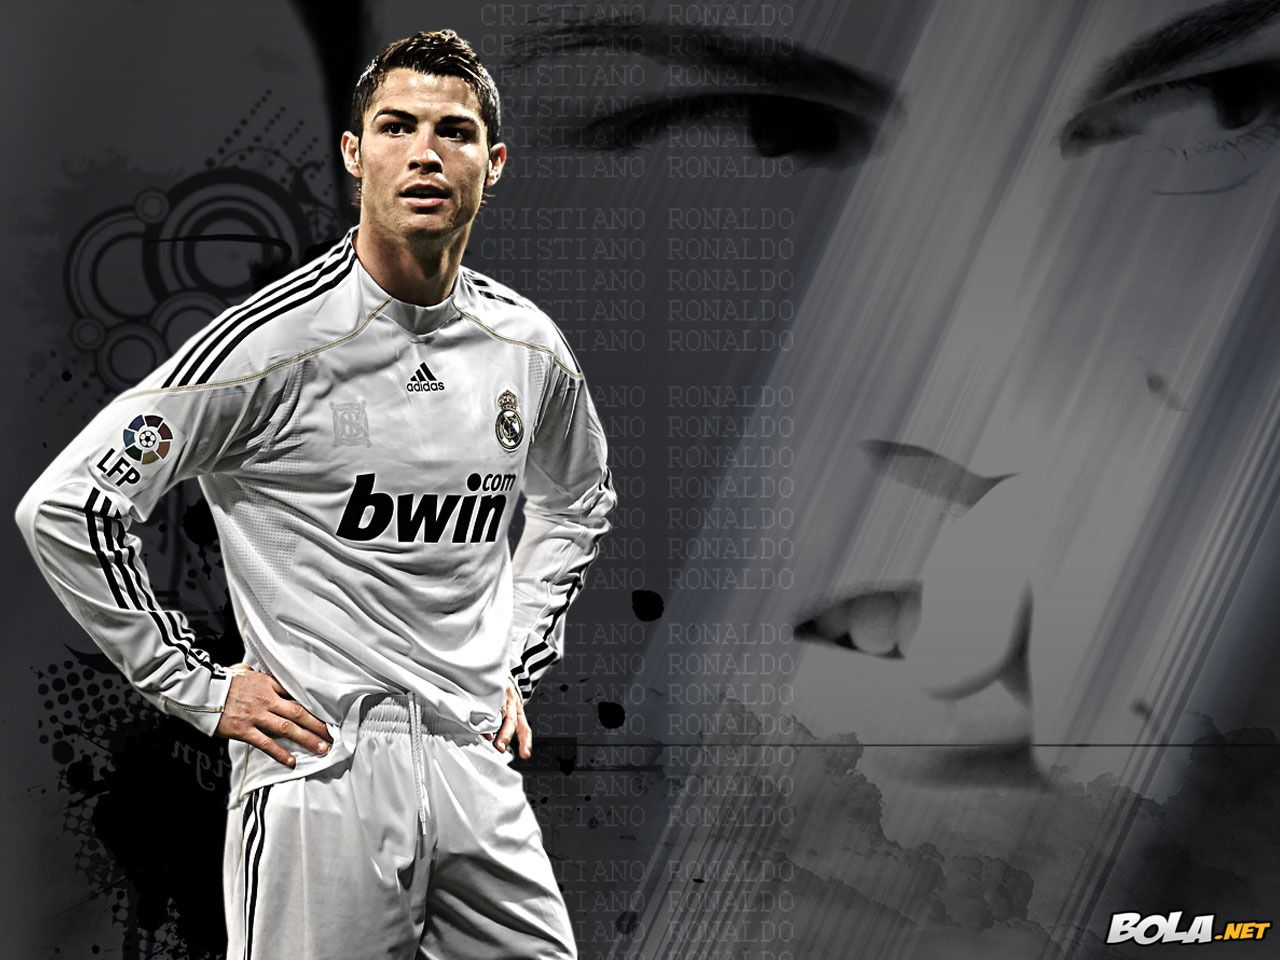 Hd wallpaper ronaldo - Find This Pin And More On My Personal Aesthetics My Favorite Soccer Player Cristiano Ronaldo Hd Wallpaper